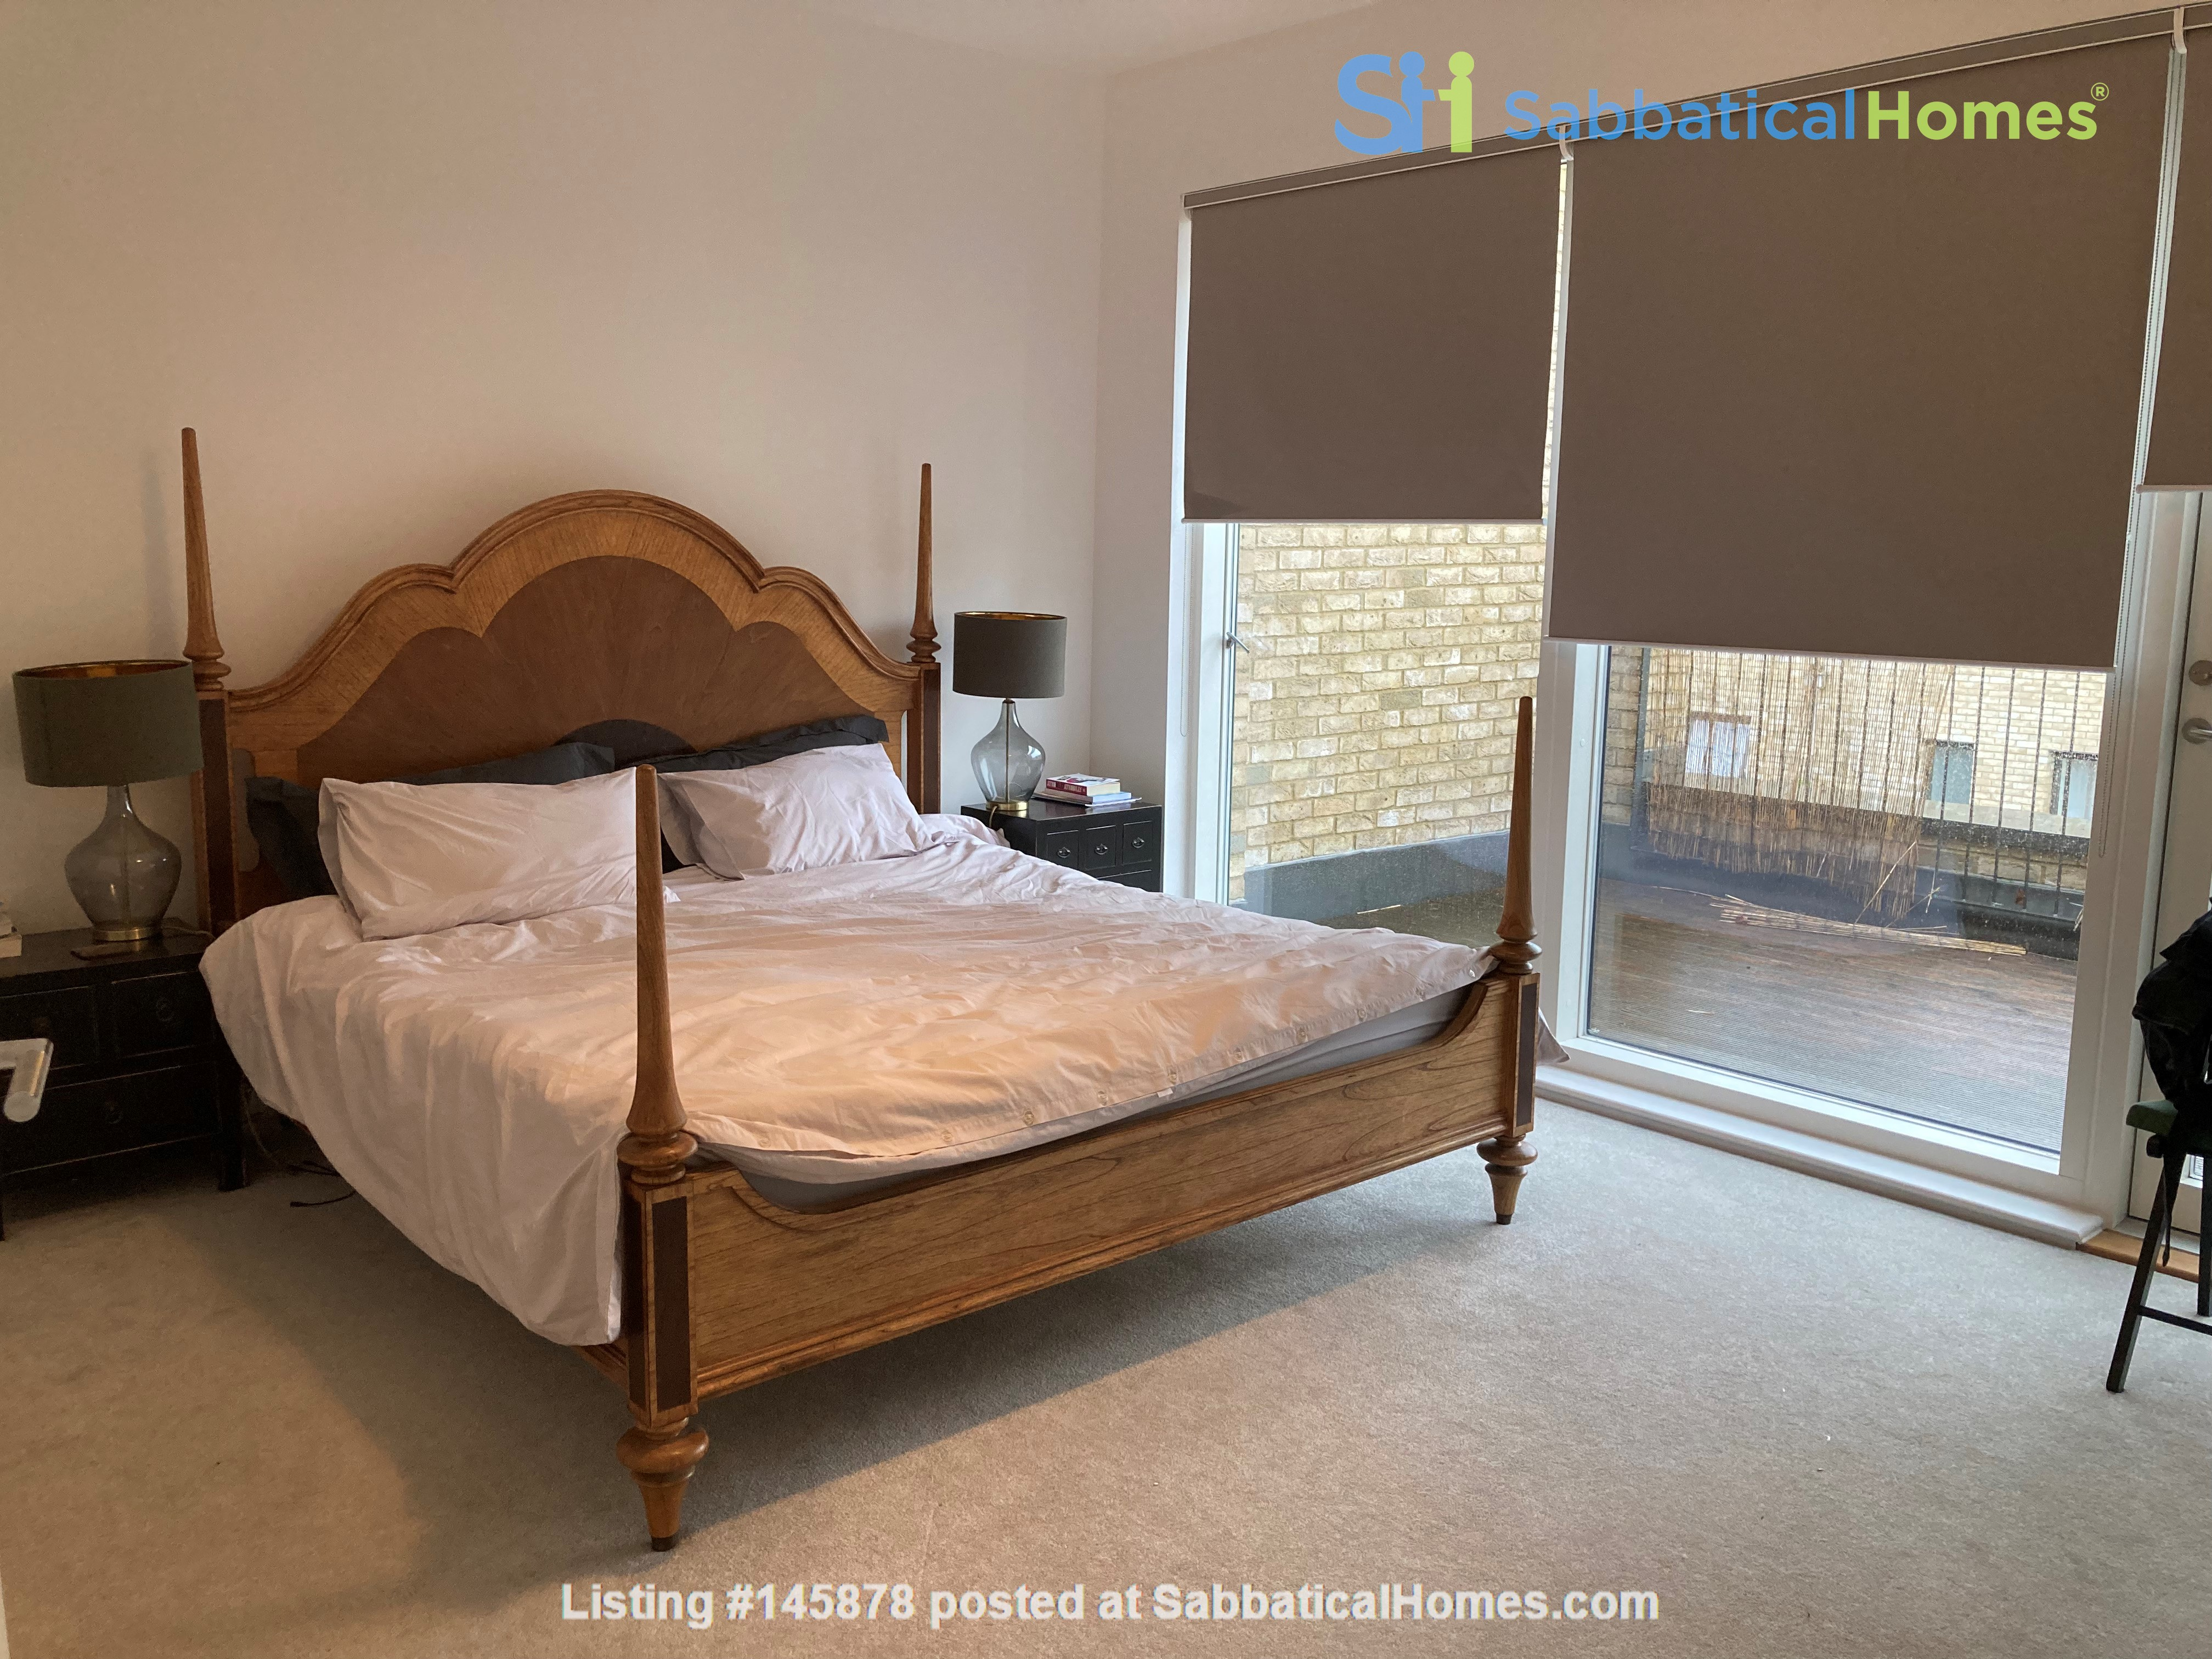 Beautifully furnished 3 bedroom + 4 bathroom townhouse in Cambridge. Home Rental in  7